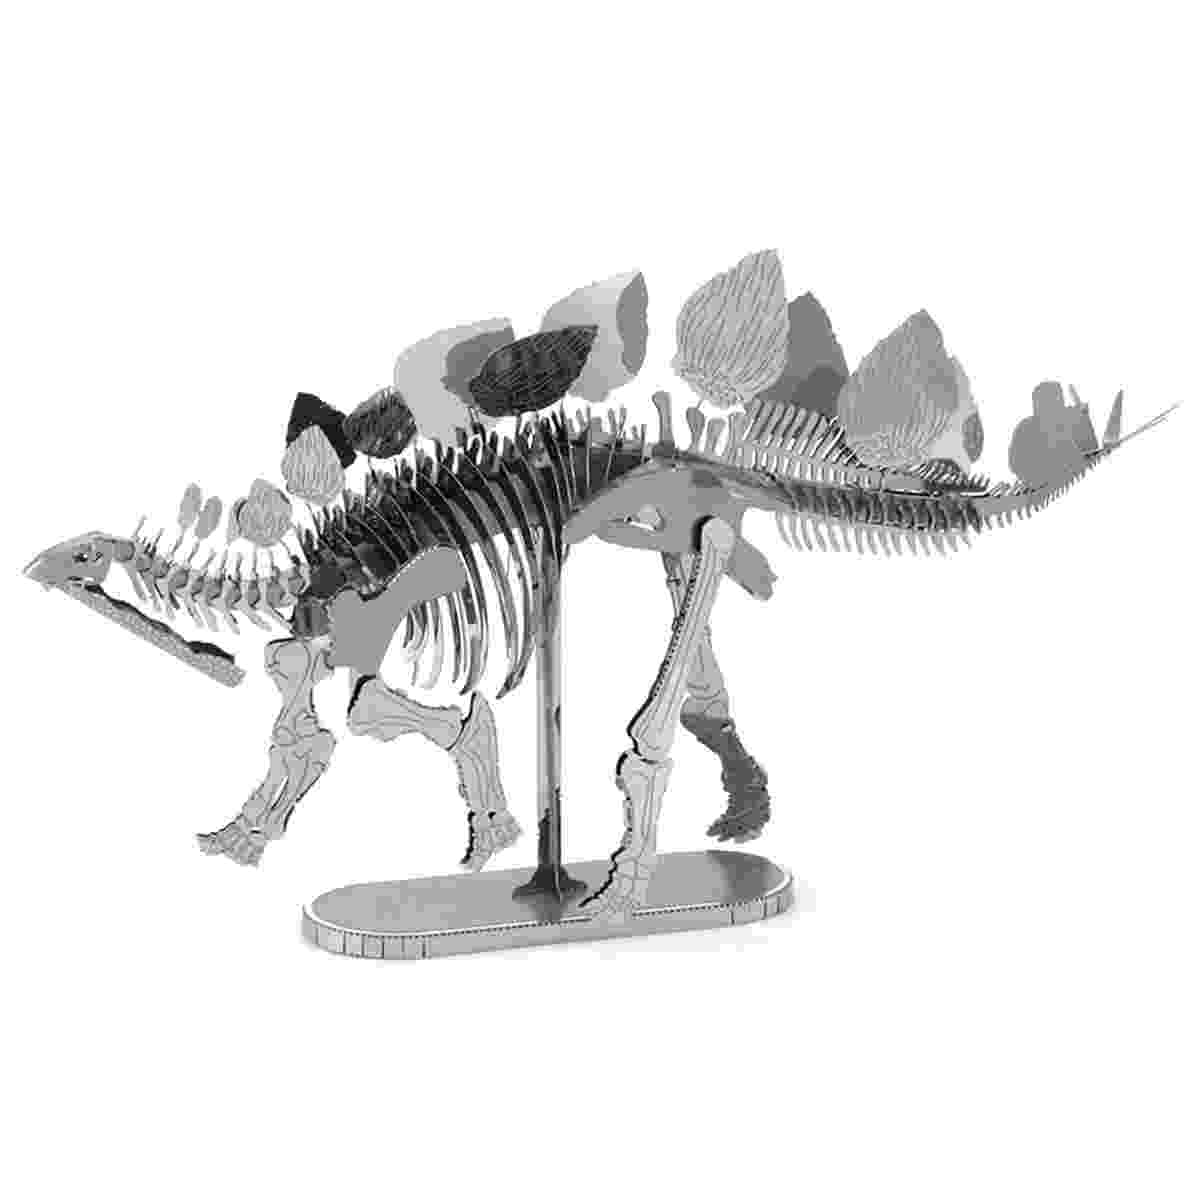 picture of a stegosaurus fascinations metal earth 3d metal model diy kits metal picture stegosaurus a of